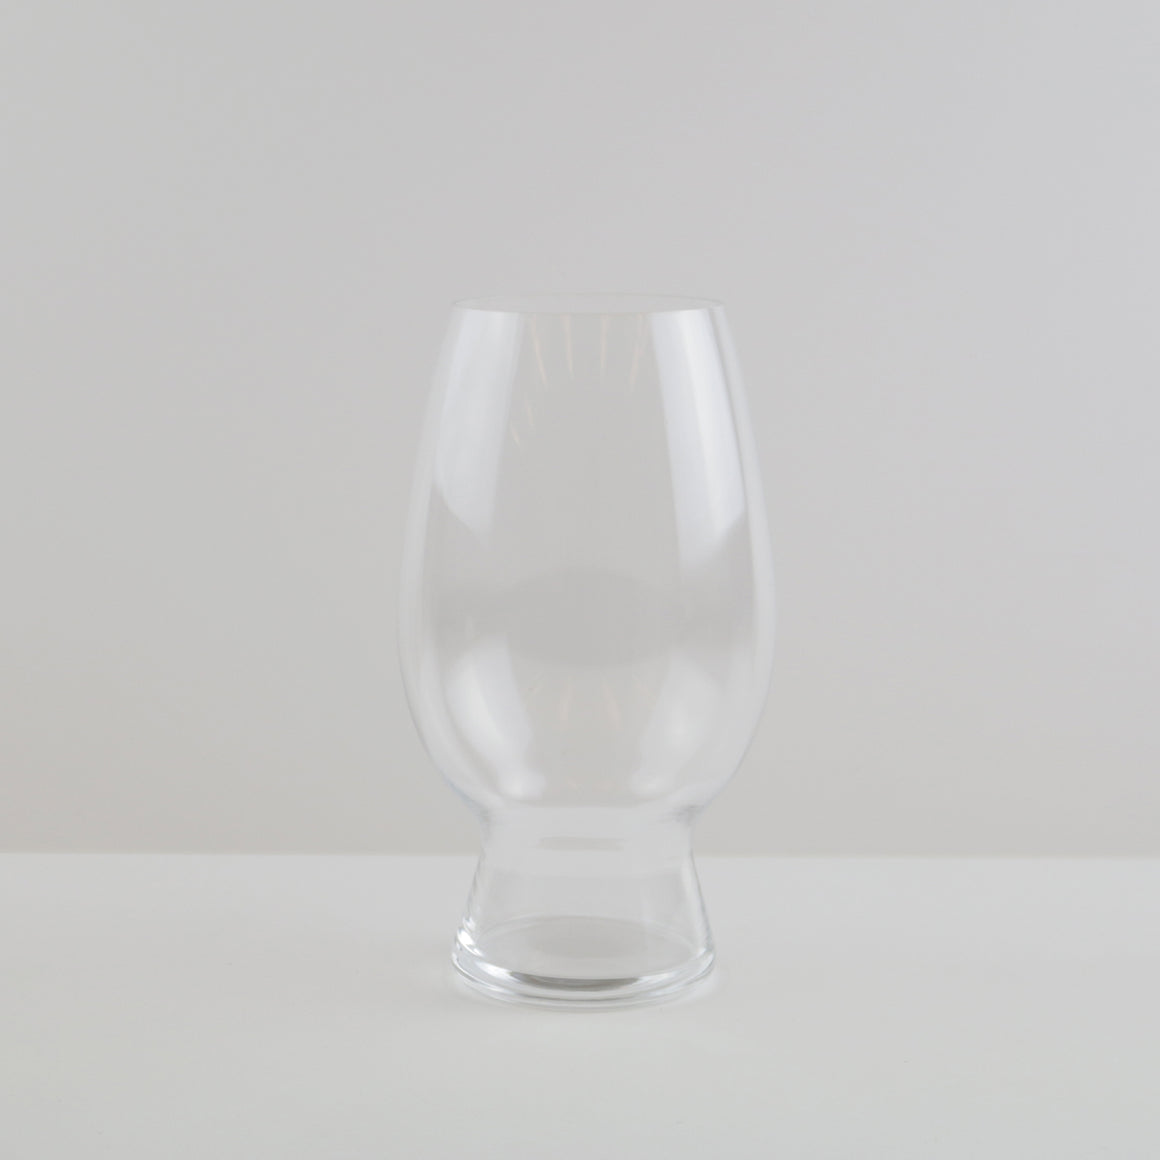 Spiegelau American Wheat Glass (Set of 4)